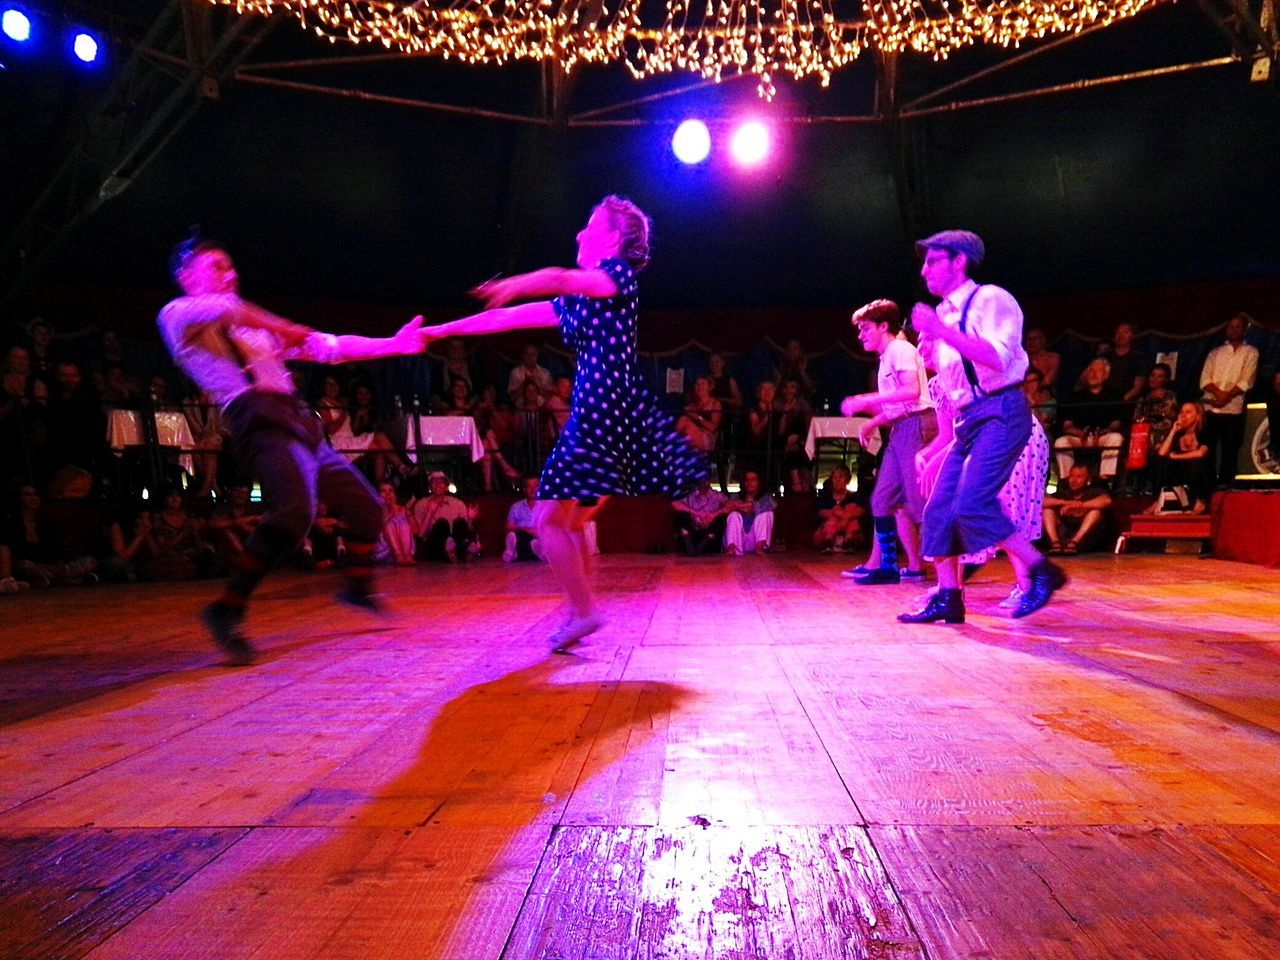 https://youtu.be/5CGmrHED45w Part 2 Part Of Zürifäscht 2016 Impressions Dancers Move Dance Is Life Dancing People Dance School Dance Show Dance Performance Positive Vibes Lights And Shadows Blinded By The Light Light Spots Vintage Fashion Wooden Floor